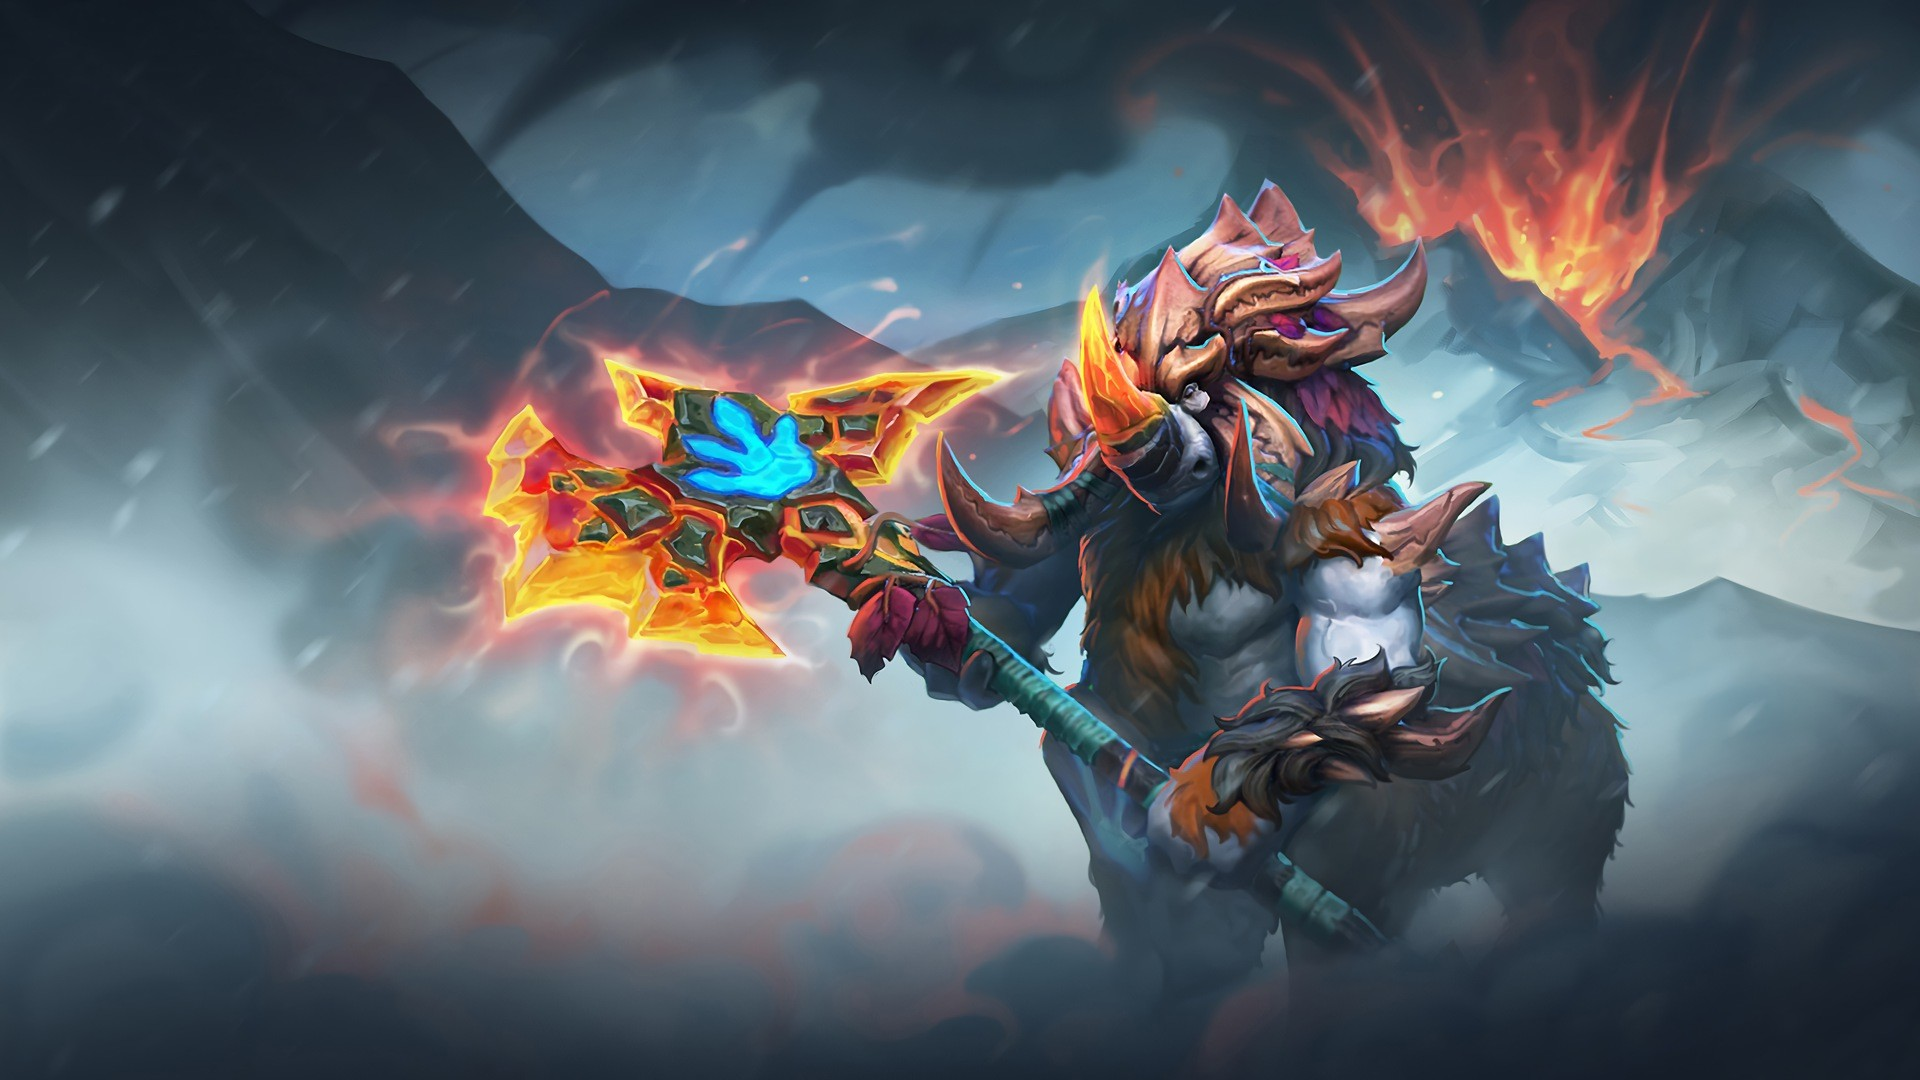 1920x1080 Beautiful Dota Wallpapers Dota Wallpaper Heroes X